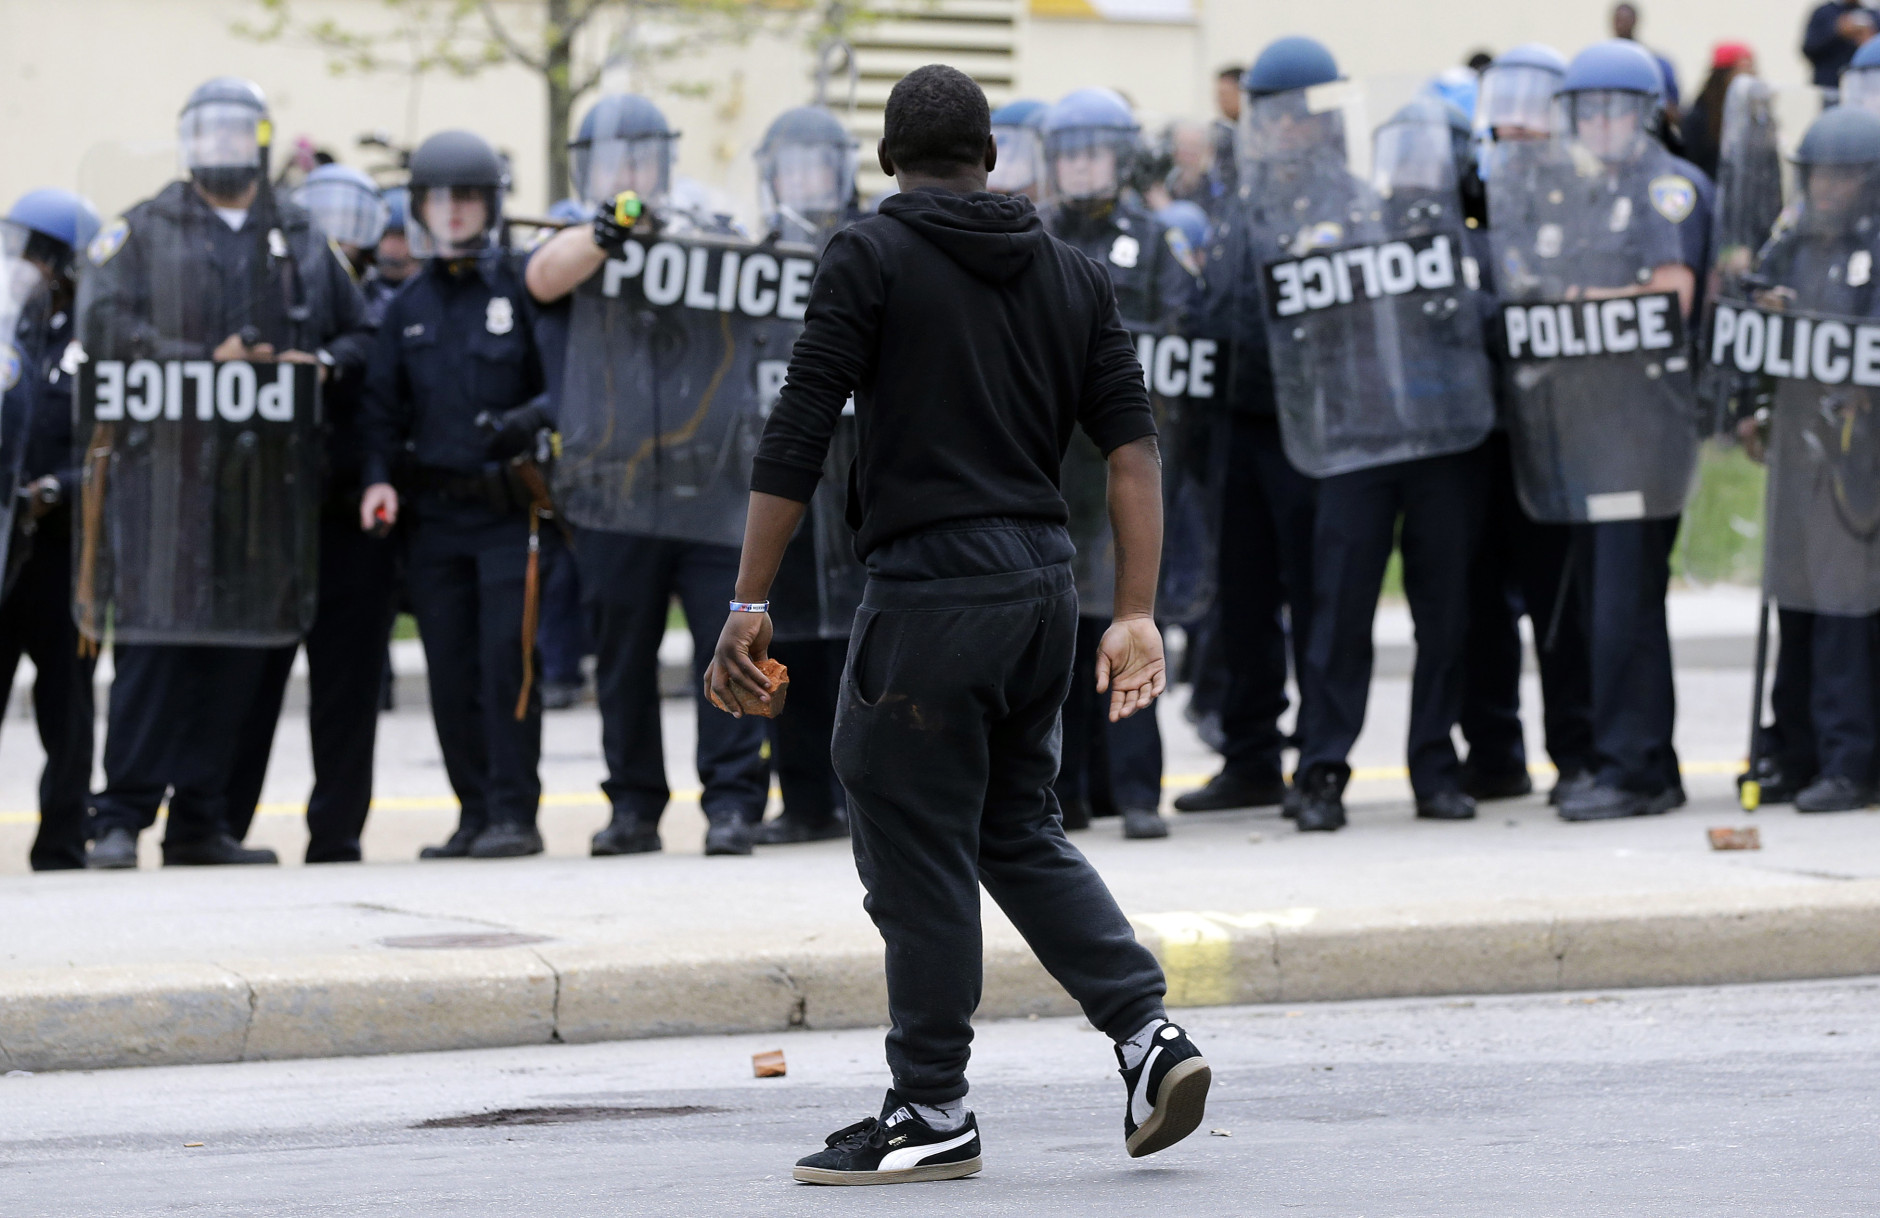 A demonstrator walks past police with a brick as they respond to thrown objects, Monday, April 27, 2015, after the funeral of Freddie Gray in Baltimore. Gray died from spinal injuries about a week after he was arrested and transported in a Baltimore Police Department van. (AP Photo/Patrick Semansky)